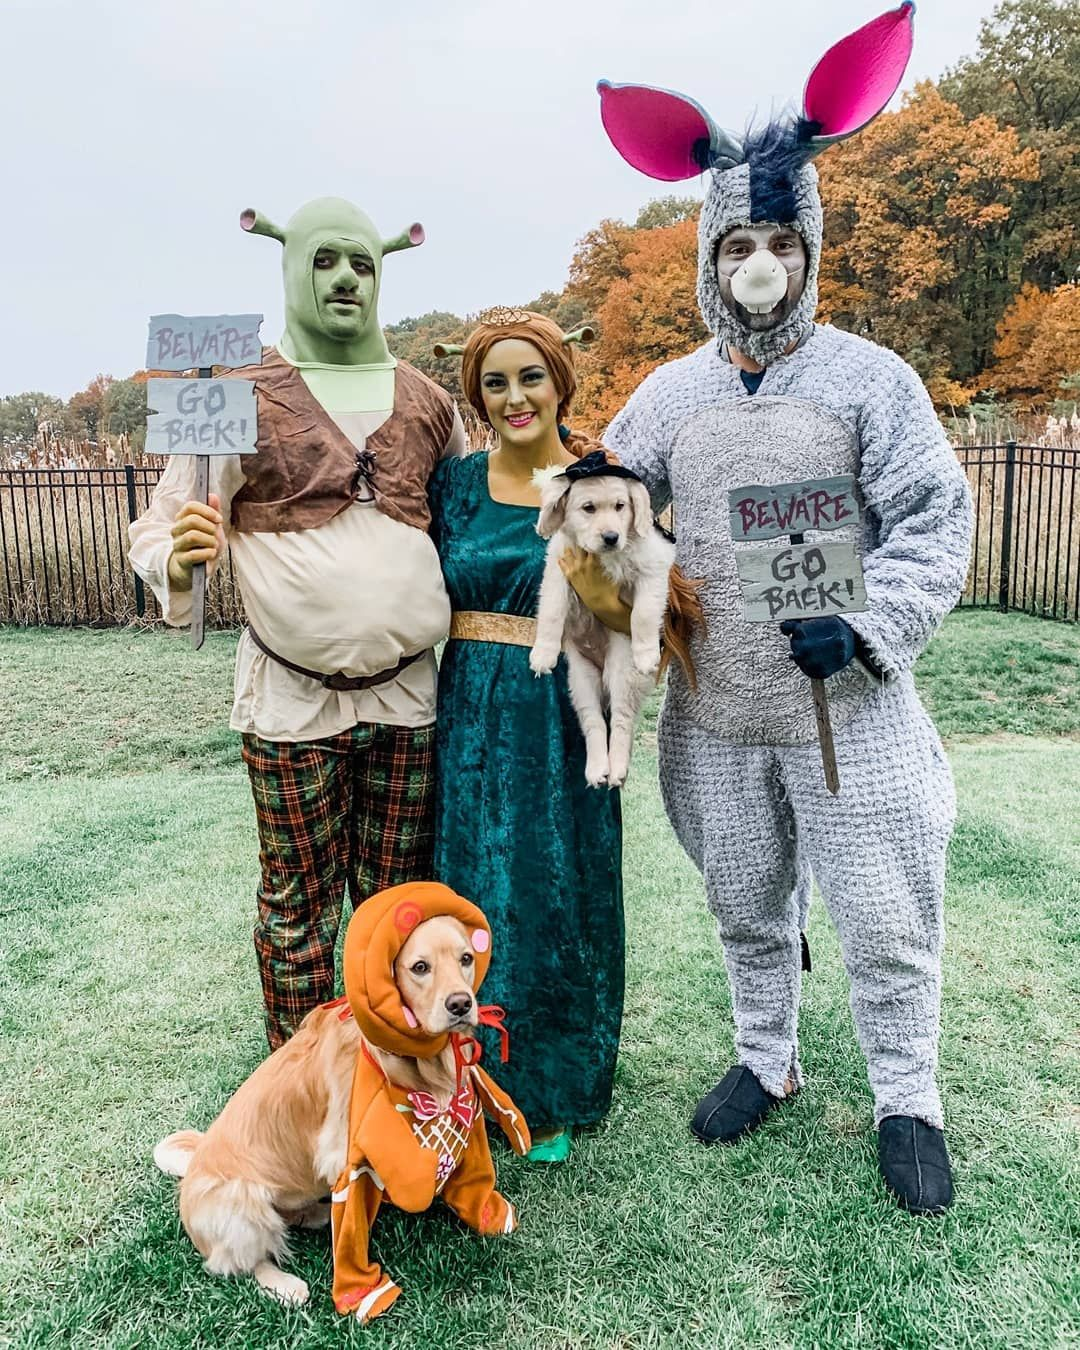 Nhlpa On Instagram That Ll Do Donkey That Ll Do Teamwork Makes The Dream And The Costumes Work For The Rust Hockey Halloween Bryan Rust Shrek Costume